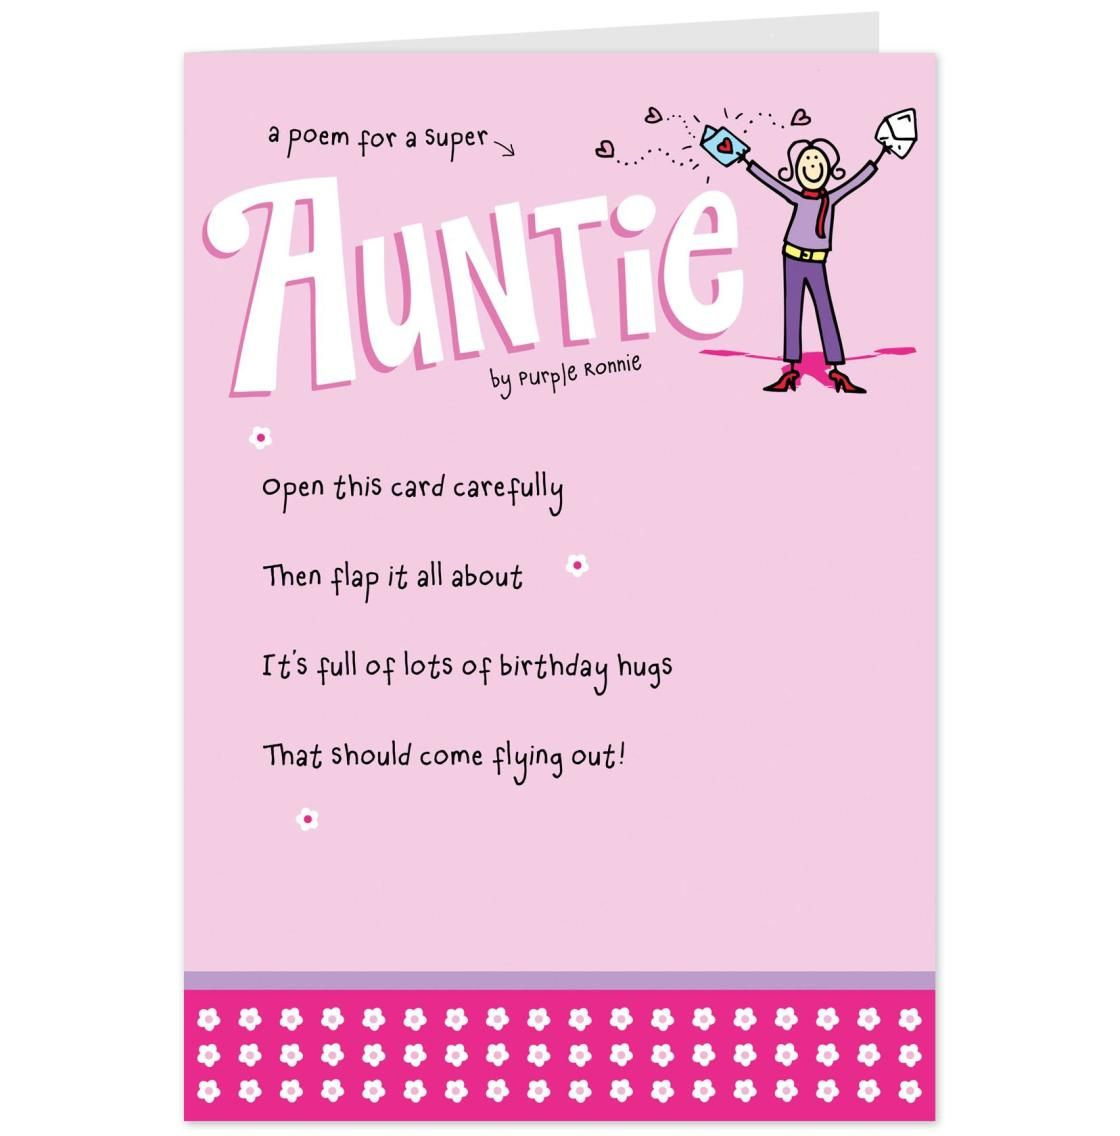 Check out free auntie happy birthday images pictures cards check out free auntie happy birthday images pictures cards messages sayings bookmarktalkfo Choice Image